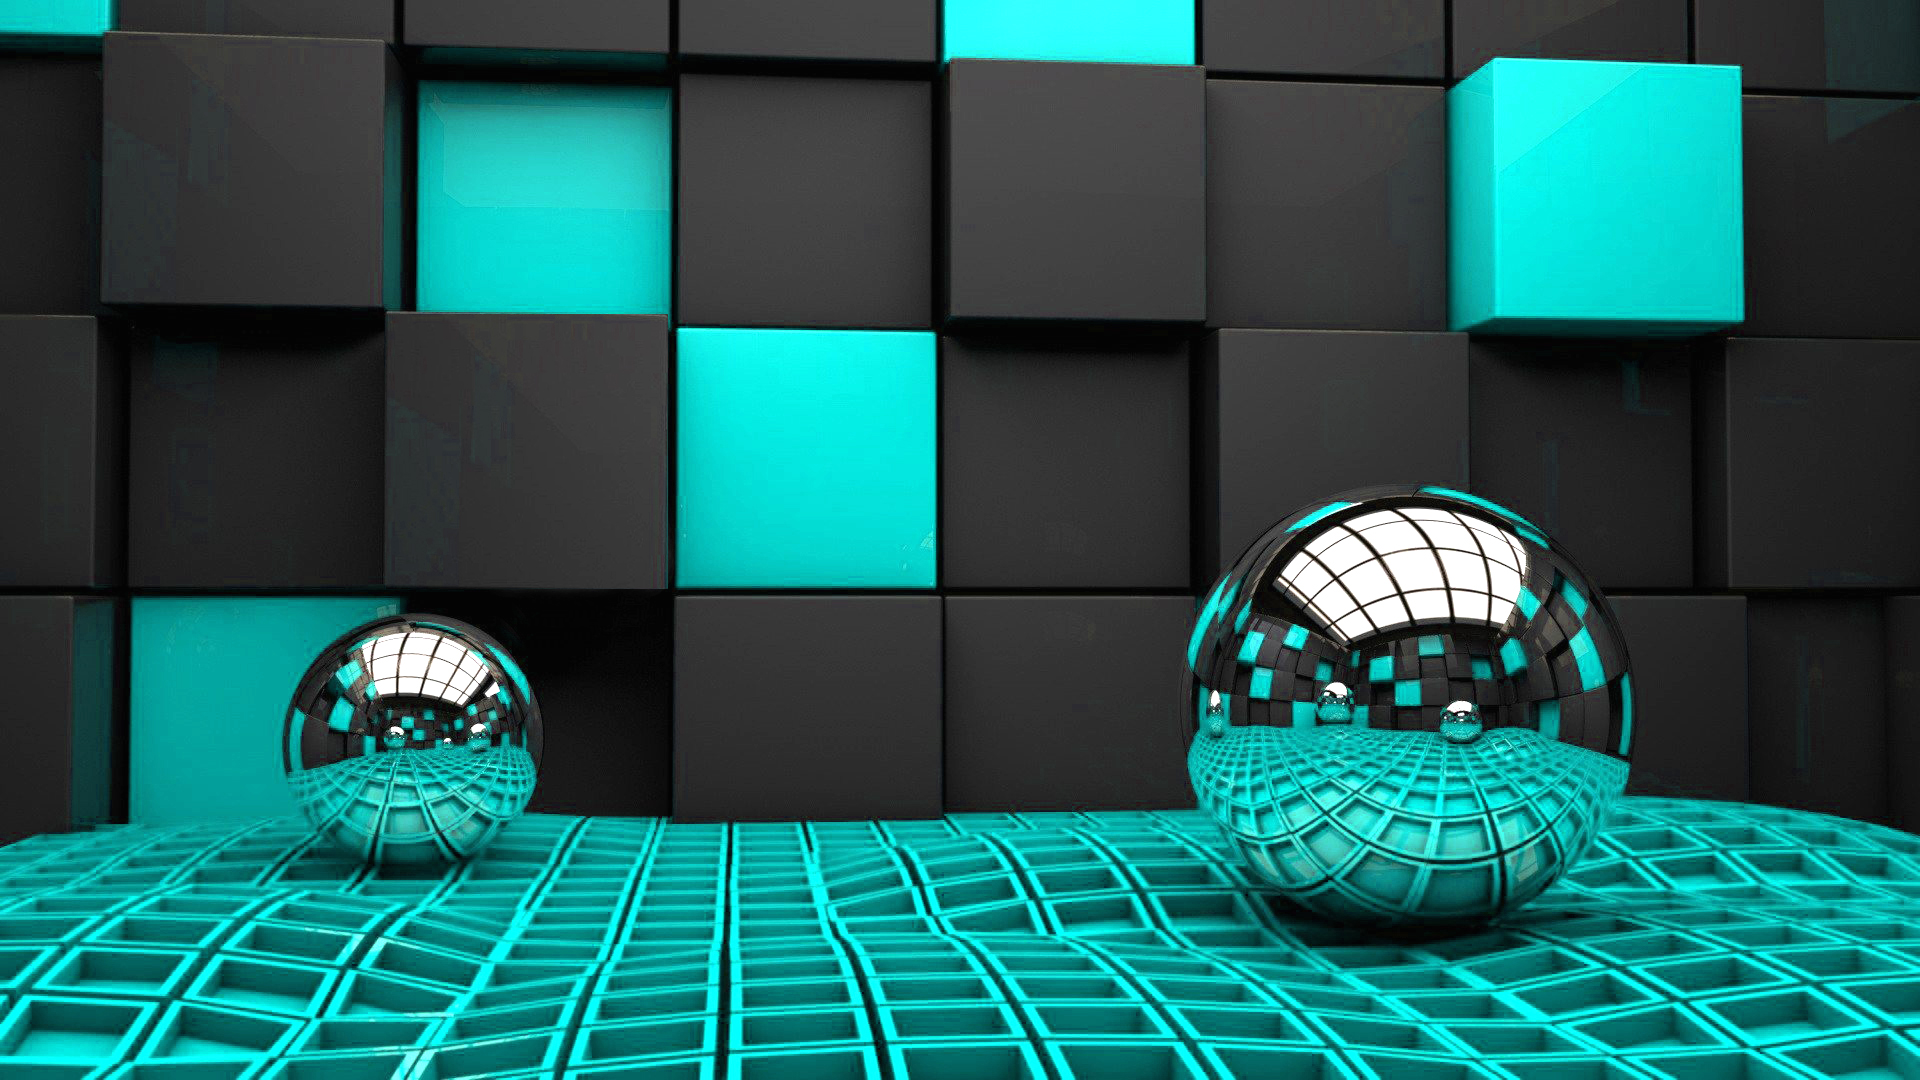 3d Wallpapers For Desktop Wallpapersafari